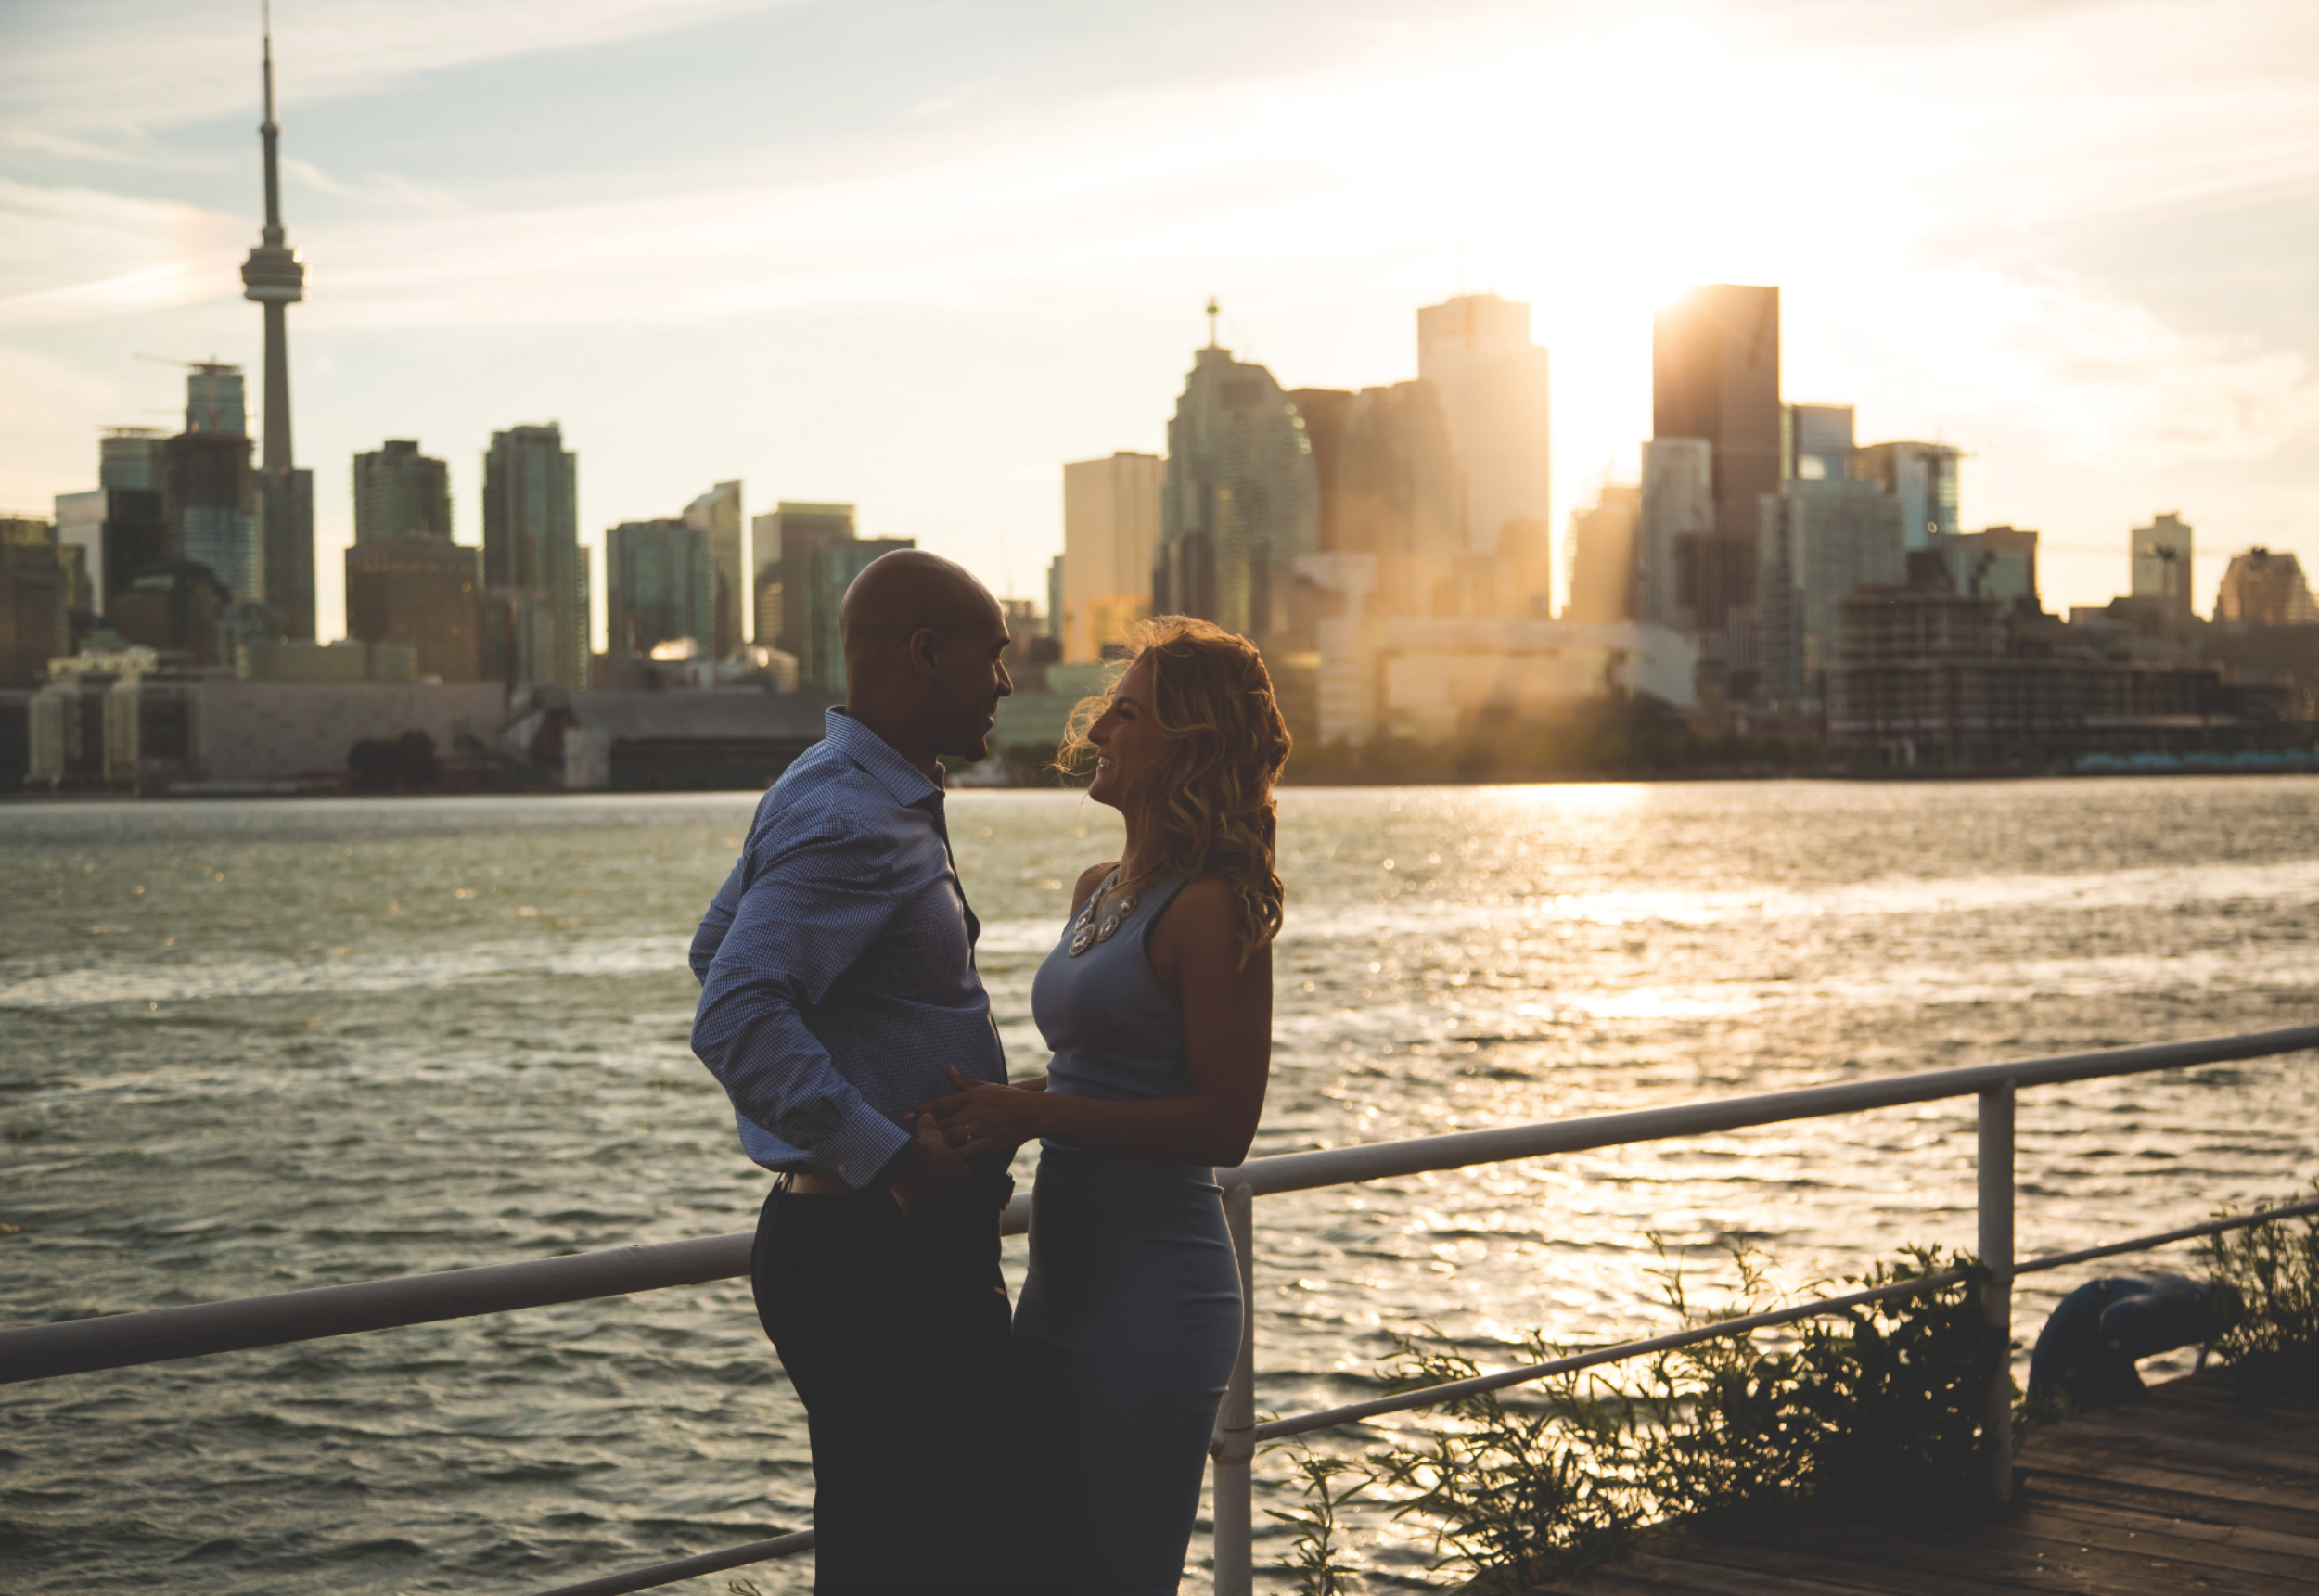 Engagement-Photos-Toronto-Downtown-Waterfront-Photographer-Wedding-Hamilton-GTA-Niagara-Oakville-Modern-Moments-by-Lauren-Engaged-Photography-Photo-Image-13.png